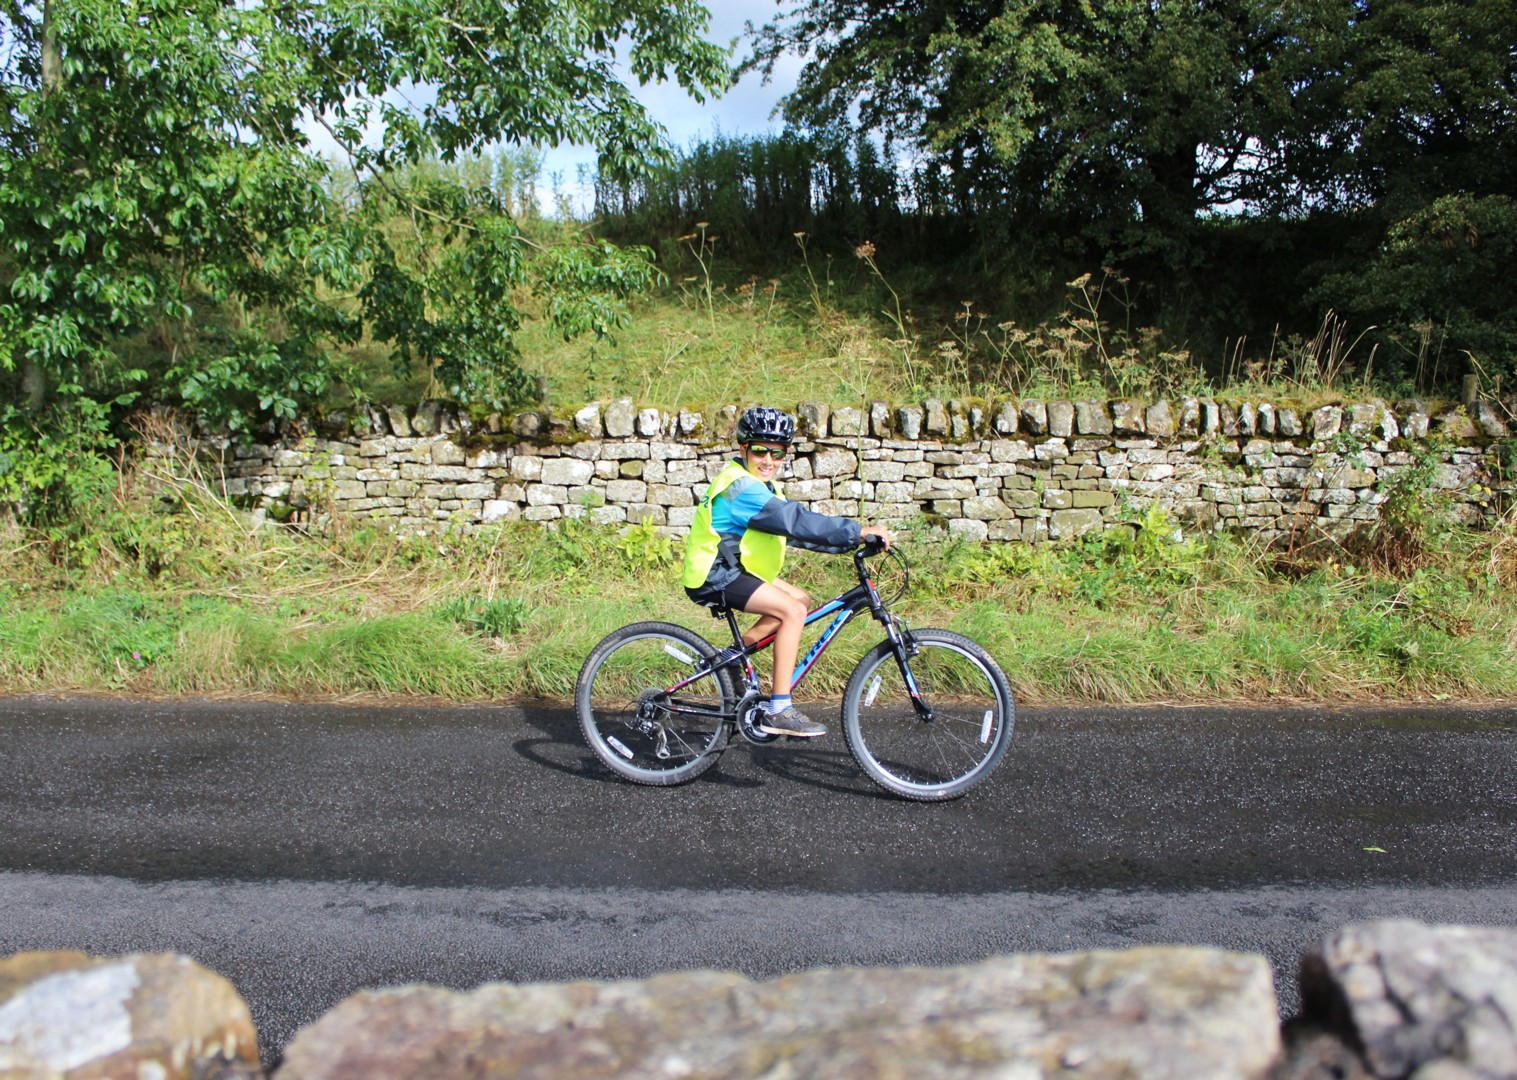 hadrians-wall-cycling-trip-family-self-guided.jpg - UK - Hadrian's Cycleway - Family Cycling